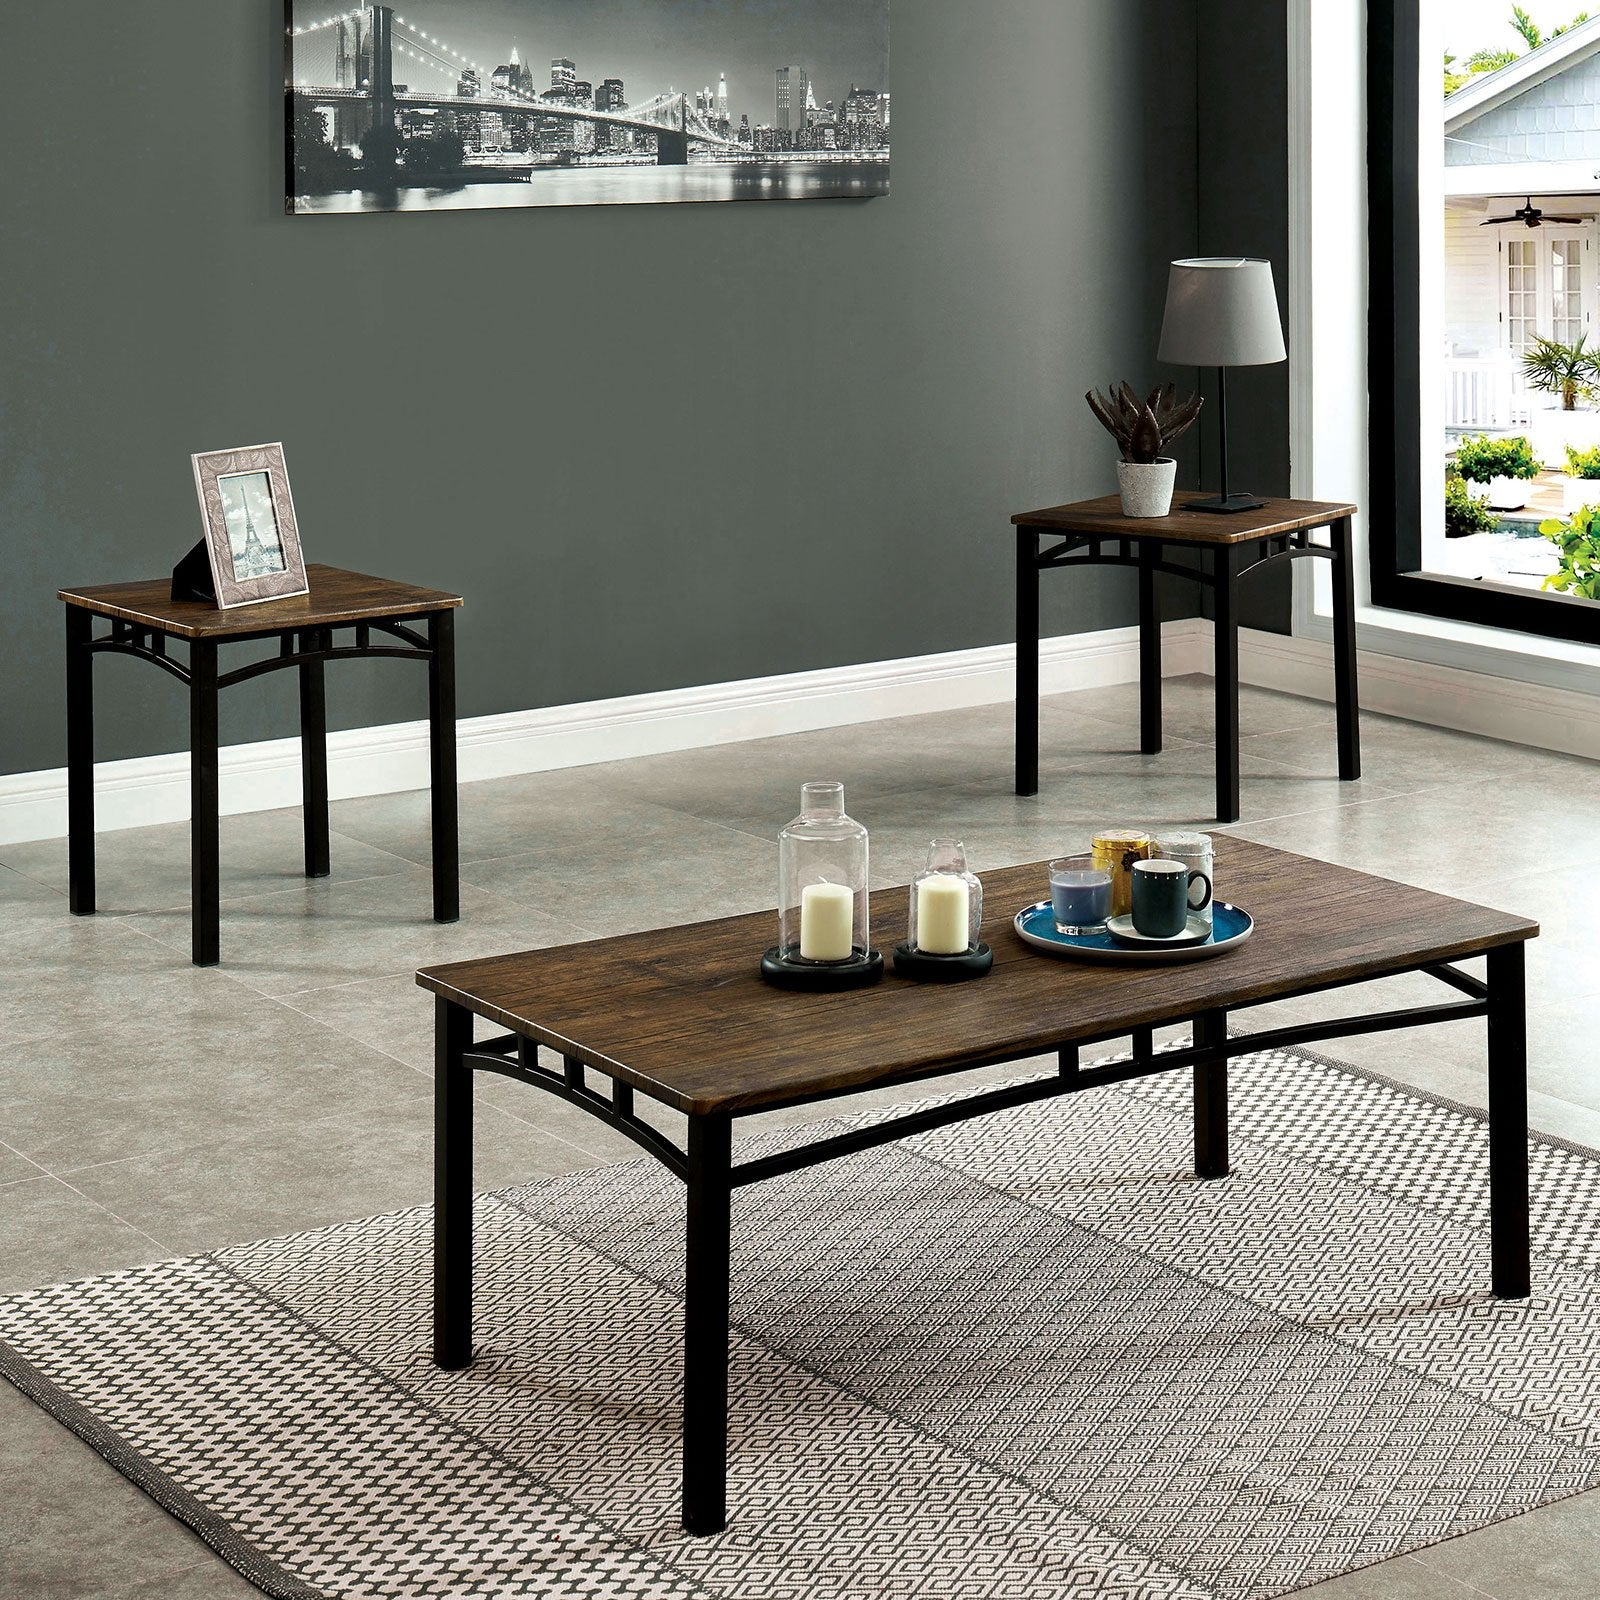 Potlatch Rustic 3 Pc. Table Set - InteriorDesignsToGo.com